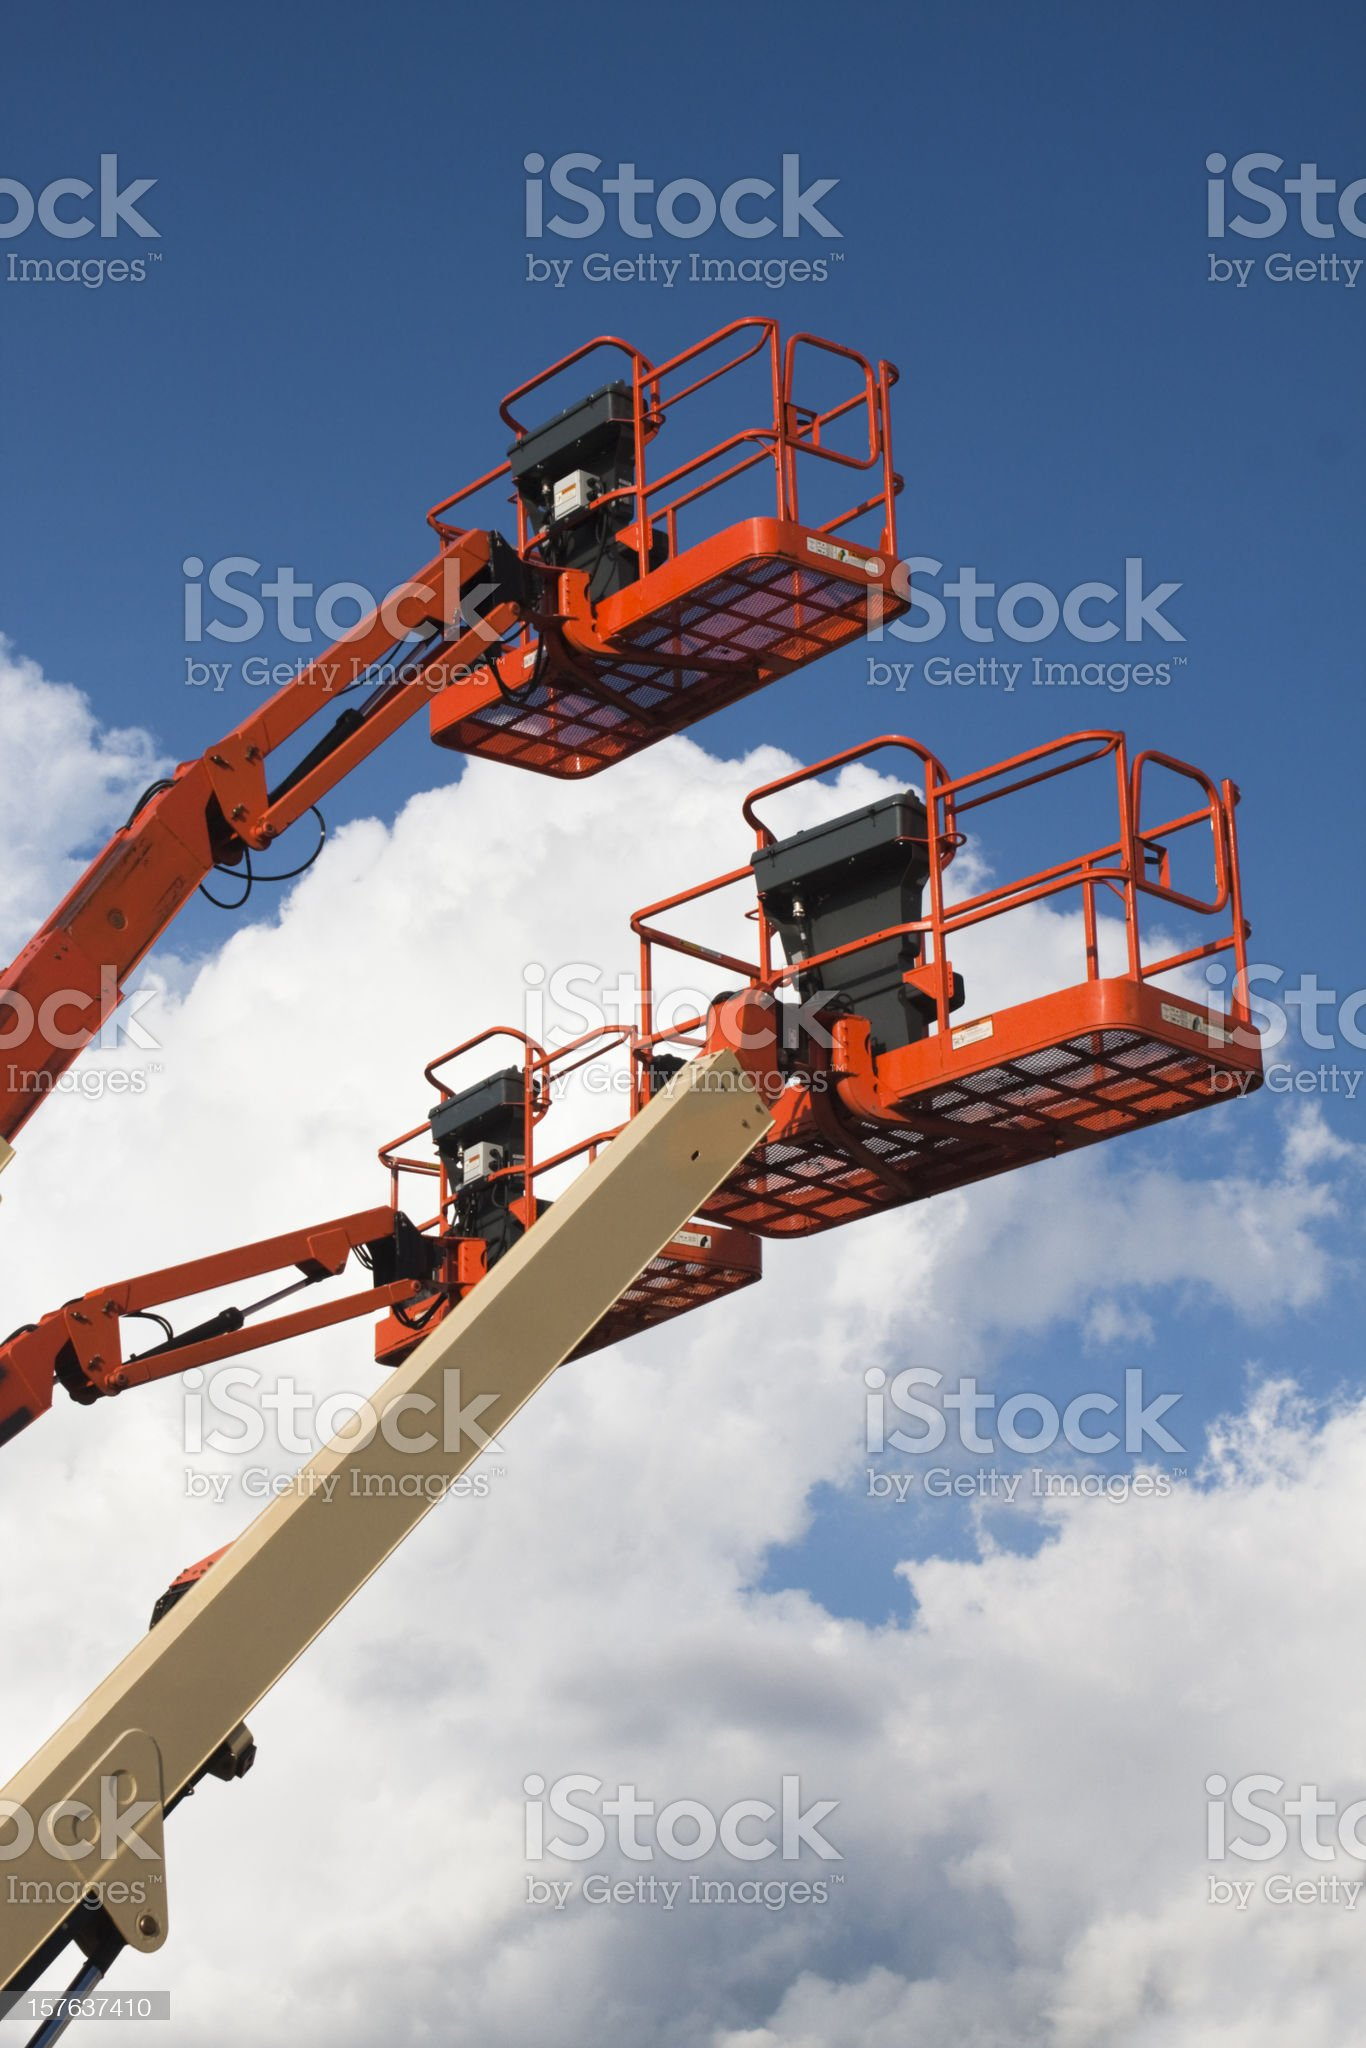 Cherry Picker Lifts Cropped royalty-free stock photo